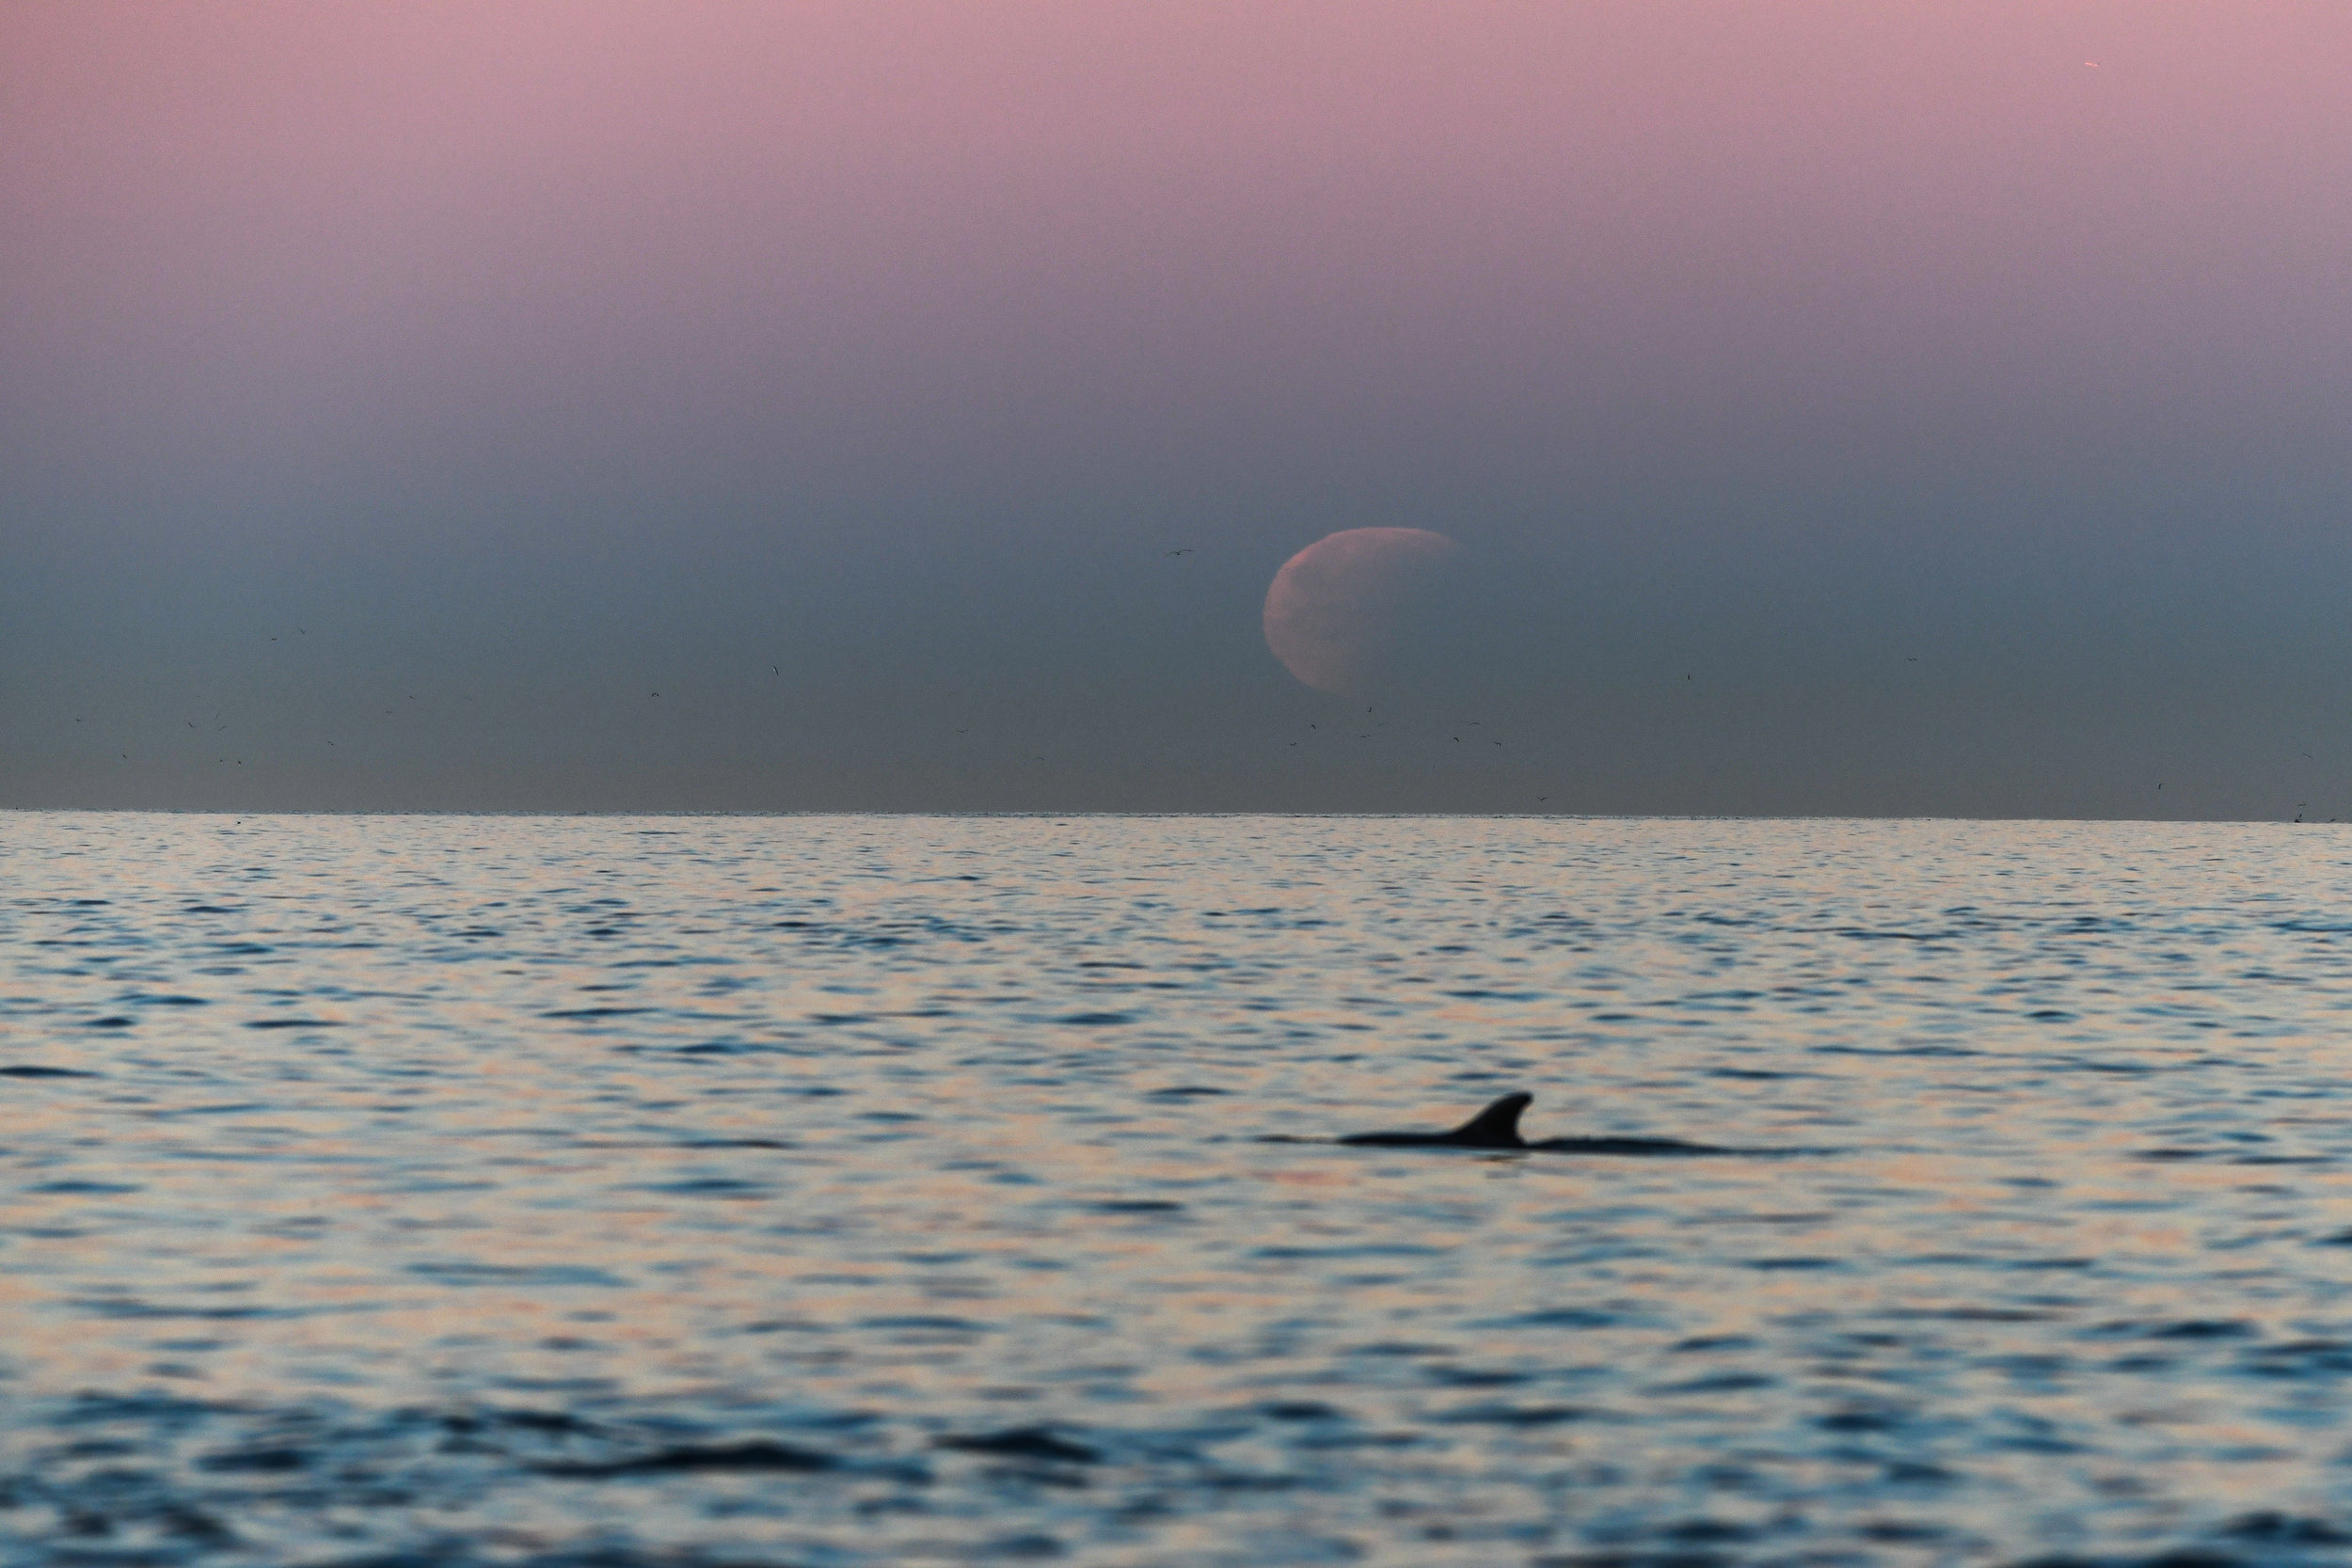 A porpoise swims through the frame during the final state of the lunar eclipse.